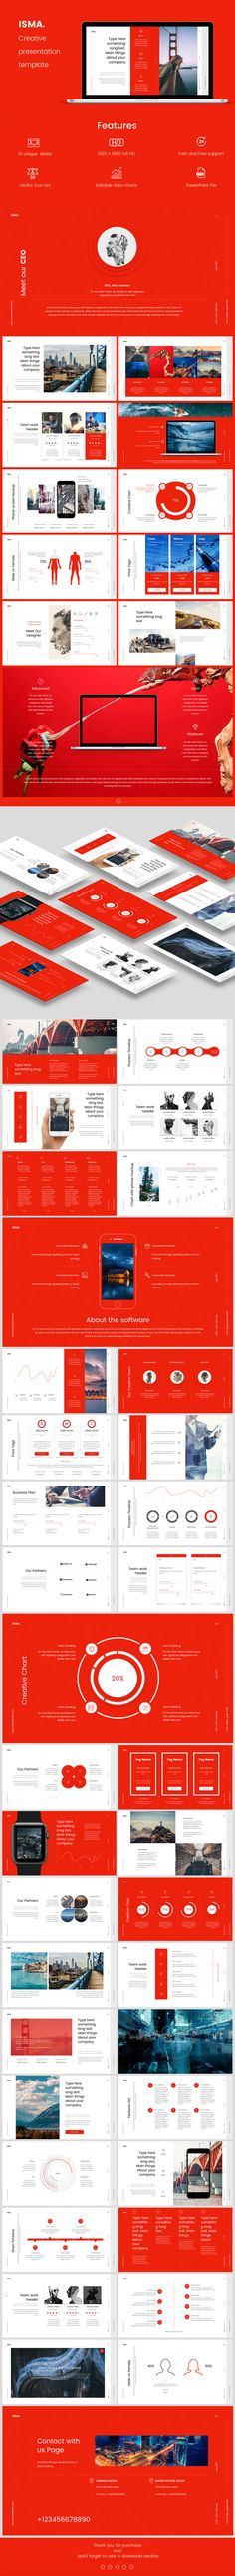 Powerpoint Tutorial, Powerpoint Template Free, Business Powerpoint Templates, Powerpoint Presentation Templates, Keynote Template, Presentation Styles, Business Presentation, Promotional Banners, Graphic Design Templates